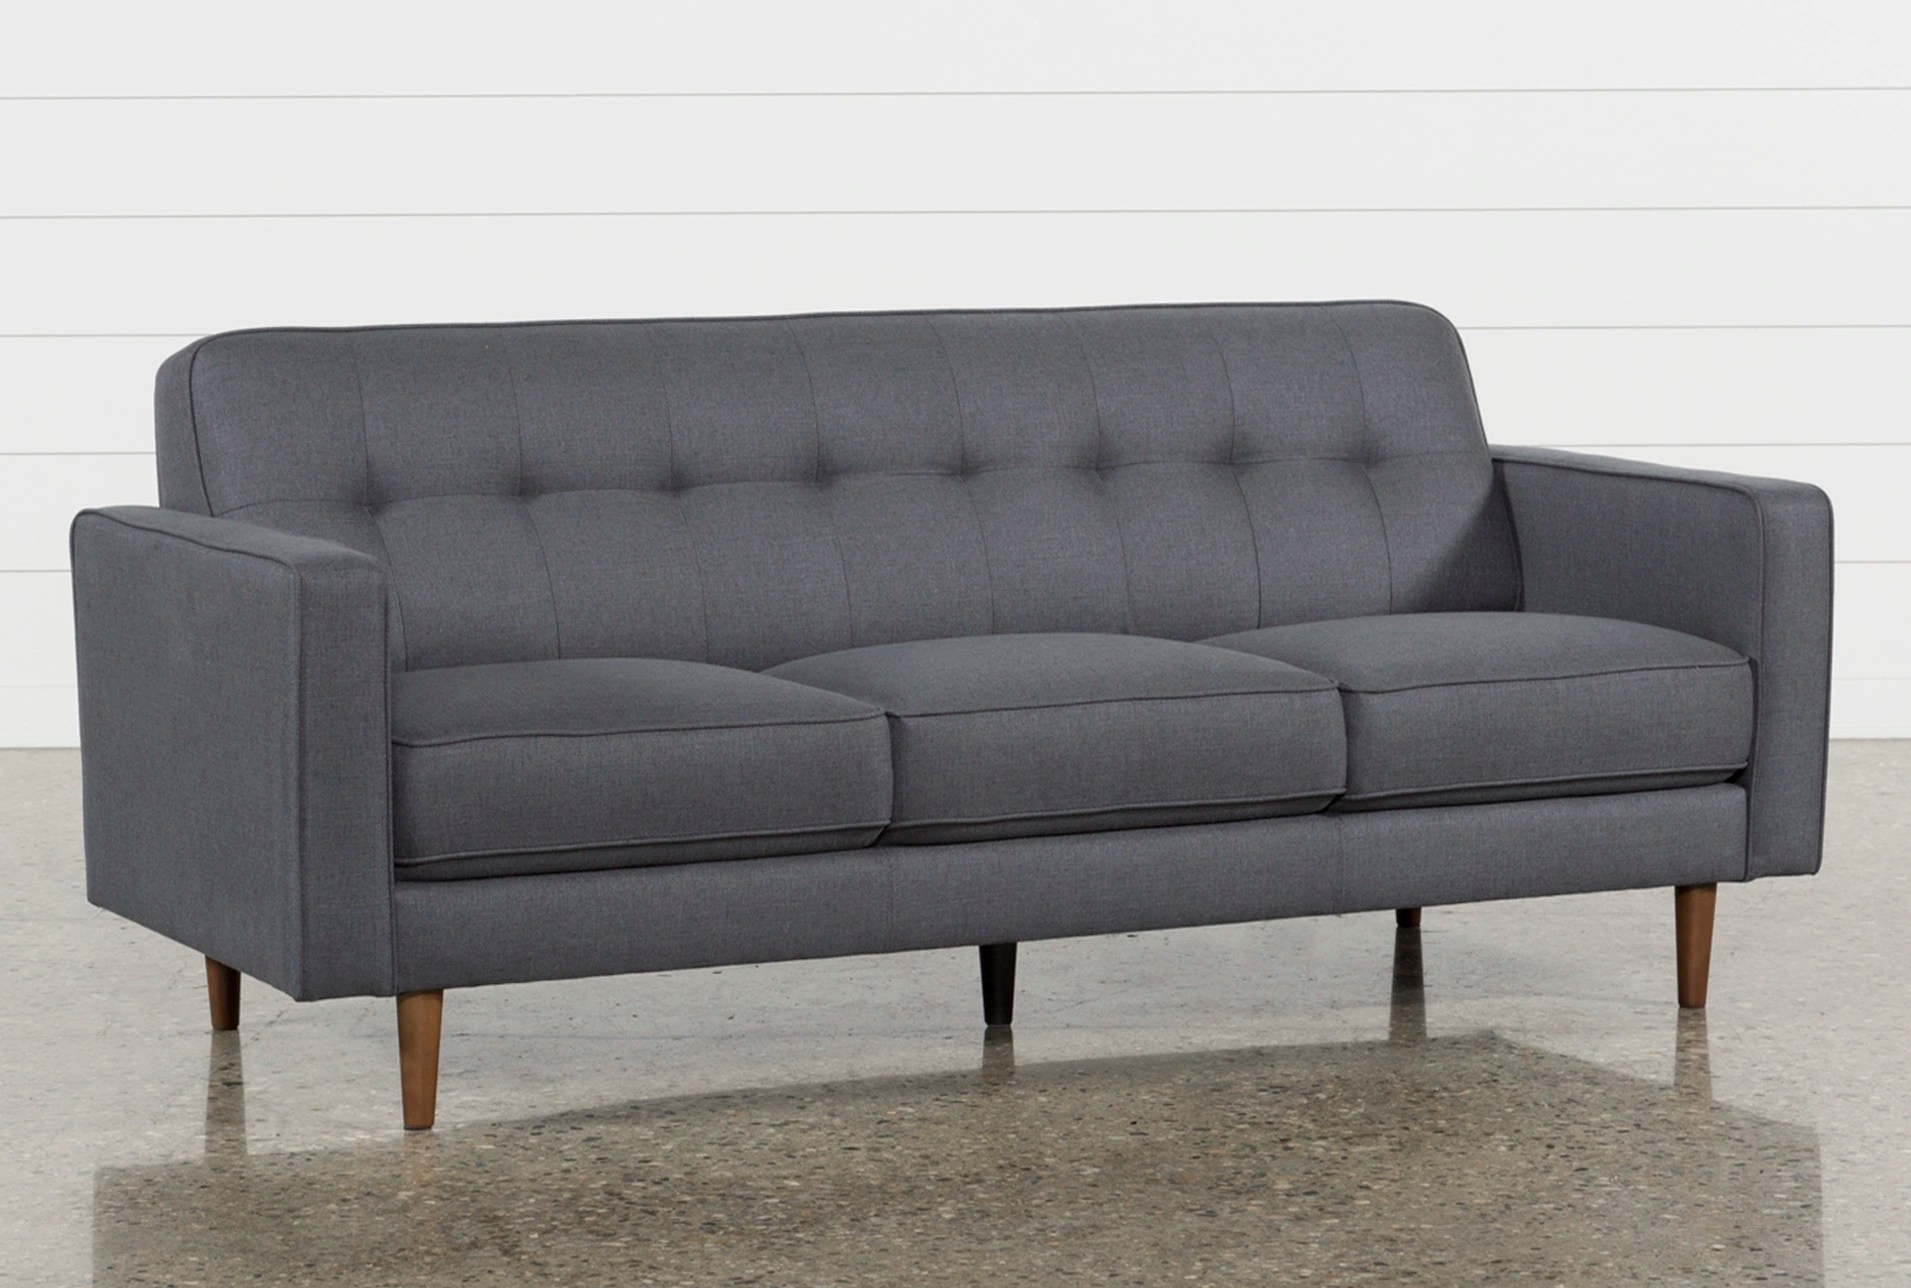 Sleeper Sofa Quick Delivery Queen Sofa Beds Sleeper Sofas Free Assembly With Delivery